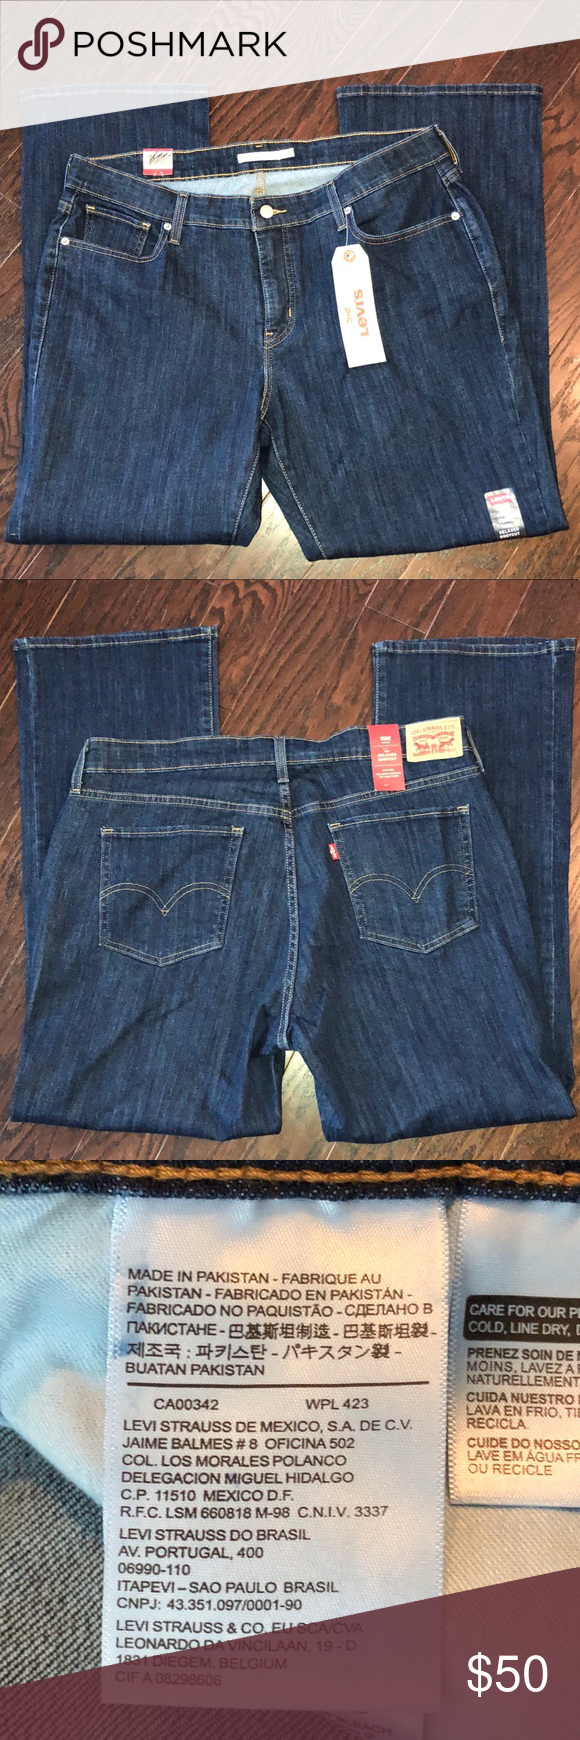 bea27cd58cb Plus Size LEVI 415 Relaxed Fit Bootcut Jeans New. Levi Relaxed Bootcut Jeans.  We